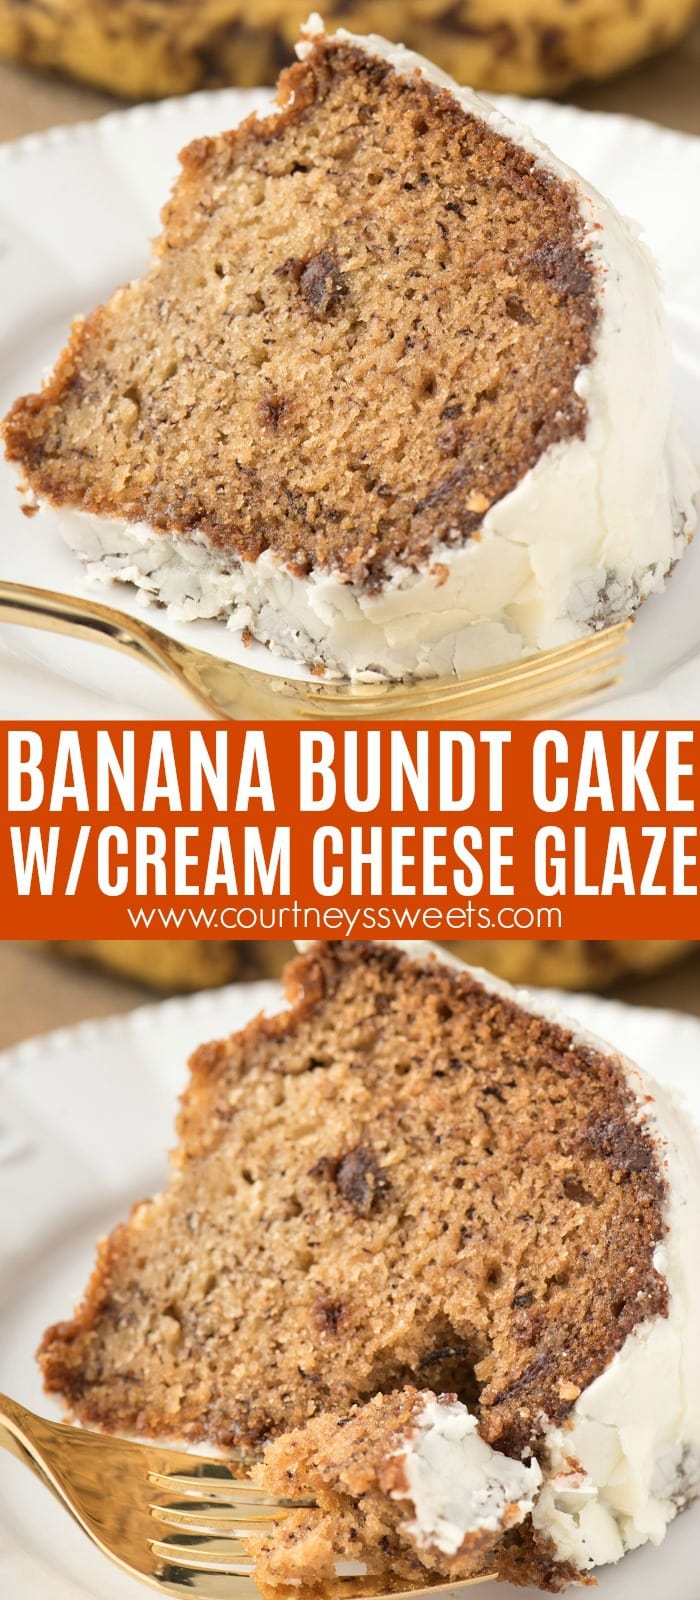 Our Banana Bundt Cake is a hit! We use ripe bananas to make this banana cake recipe pure deliciousness!